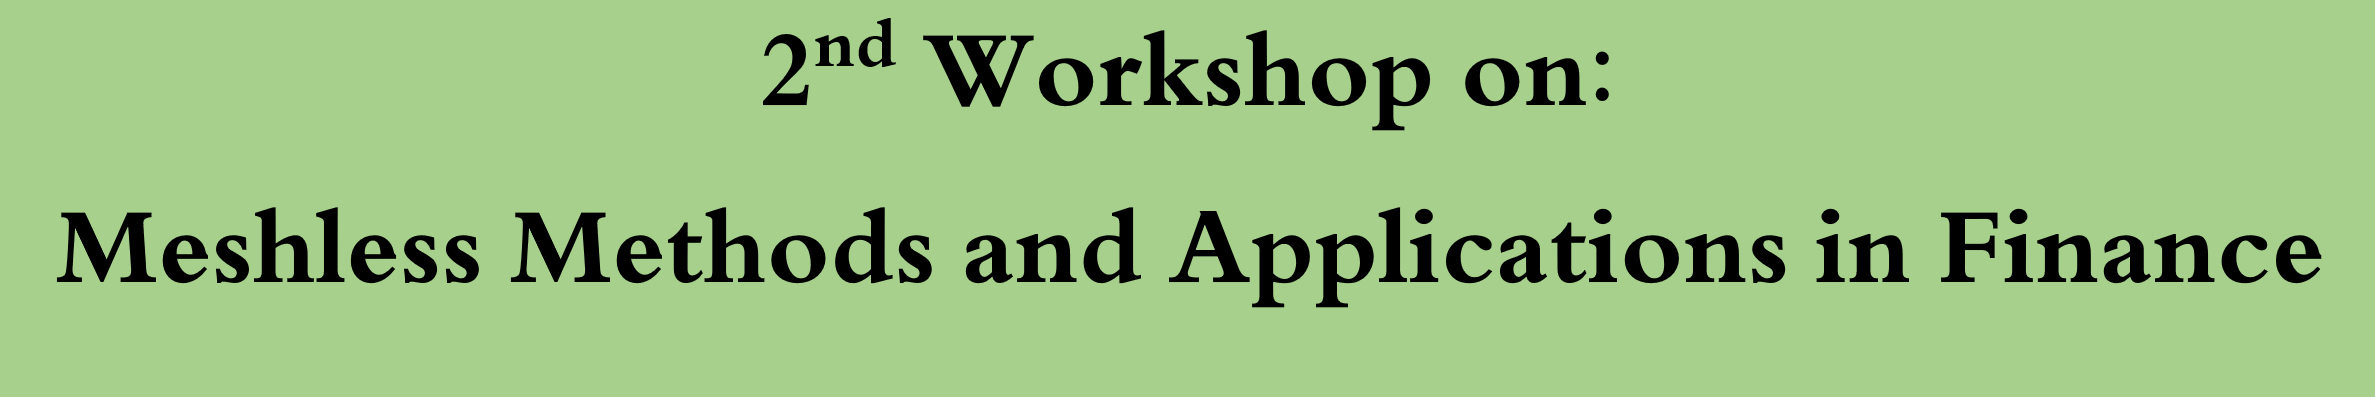 2nd Workshop on Meshless Methods and Applications in Finance